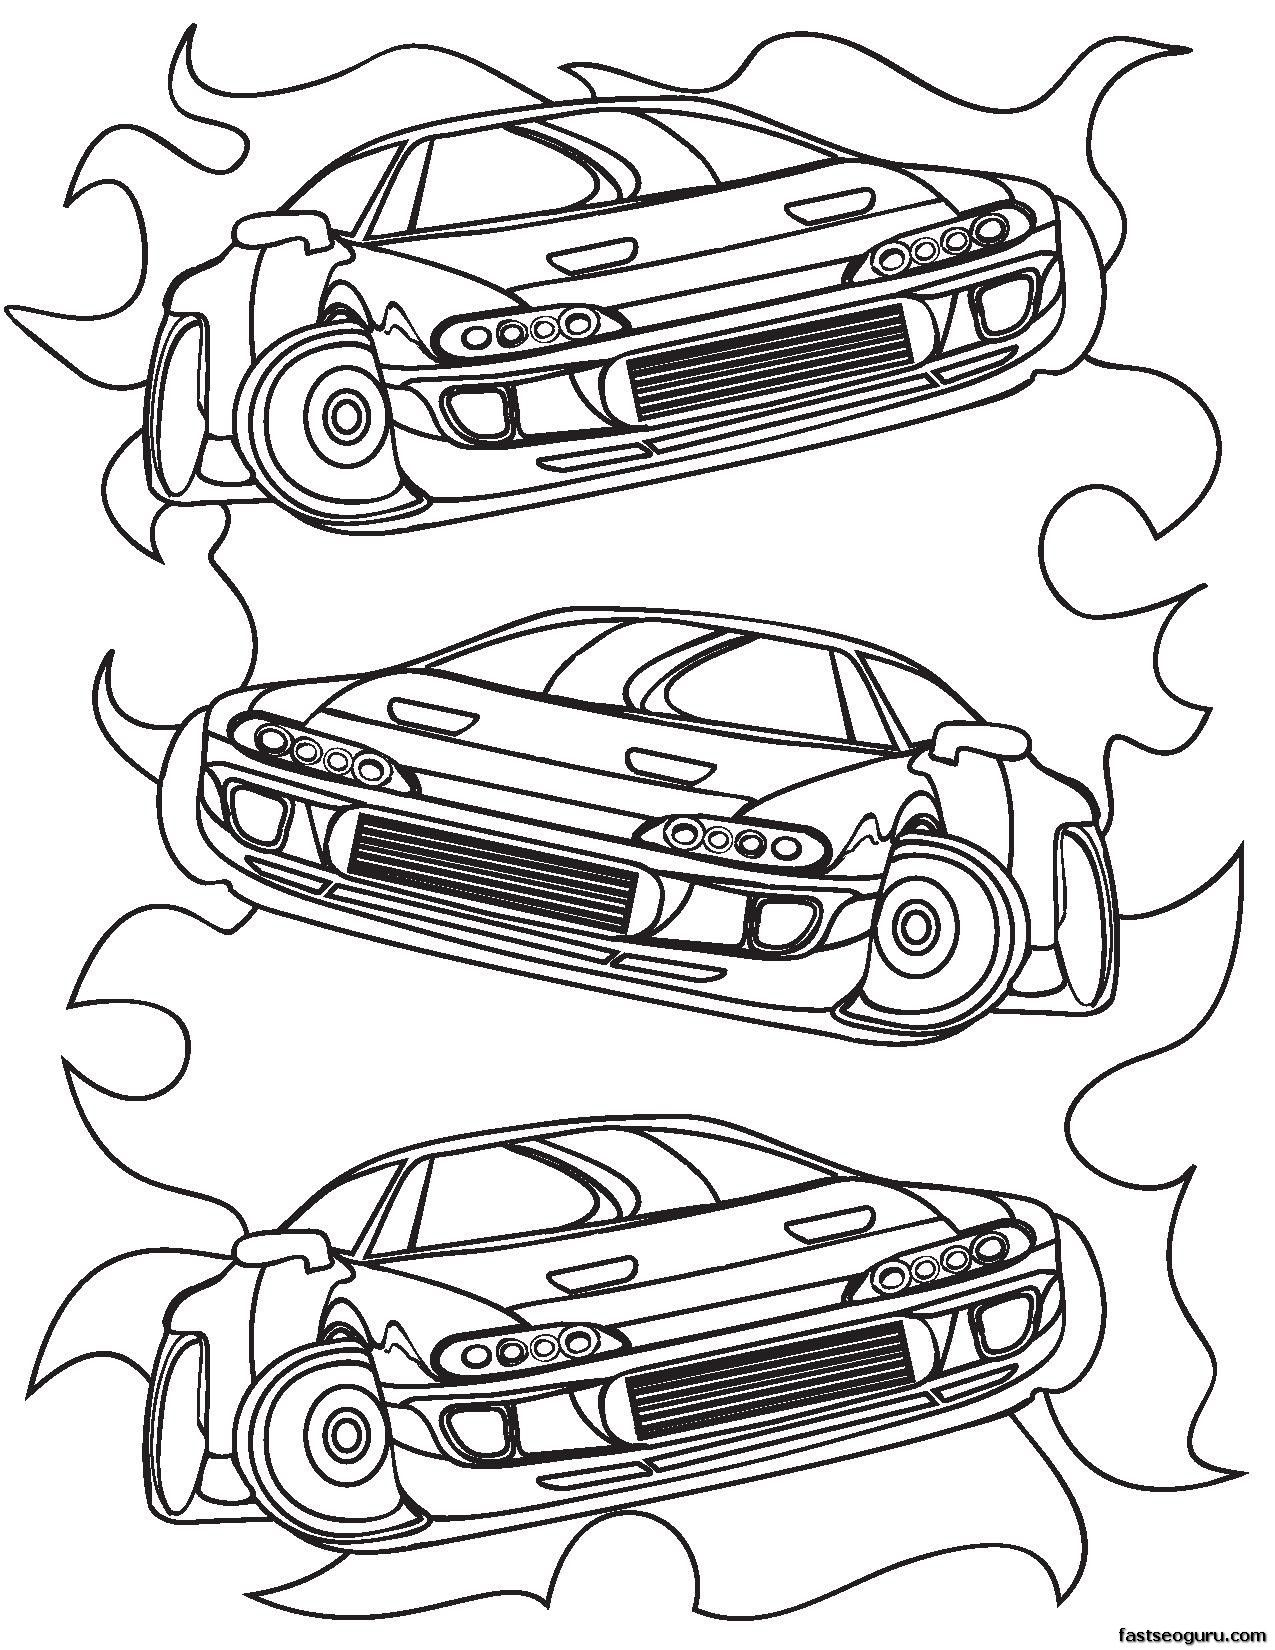 Coloring Pages For Boys Cars Printable - Coloring Home